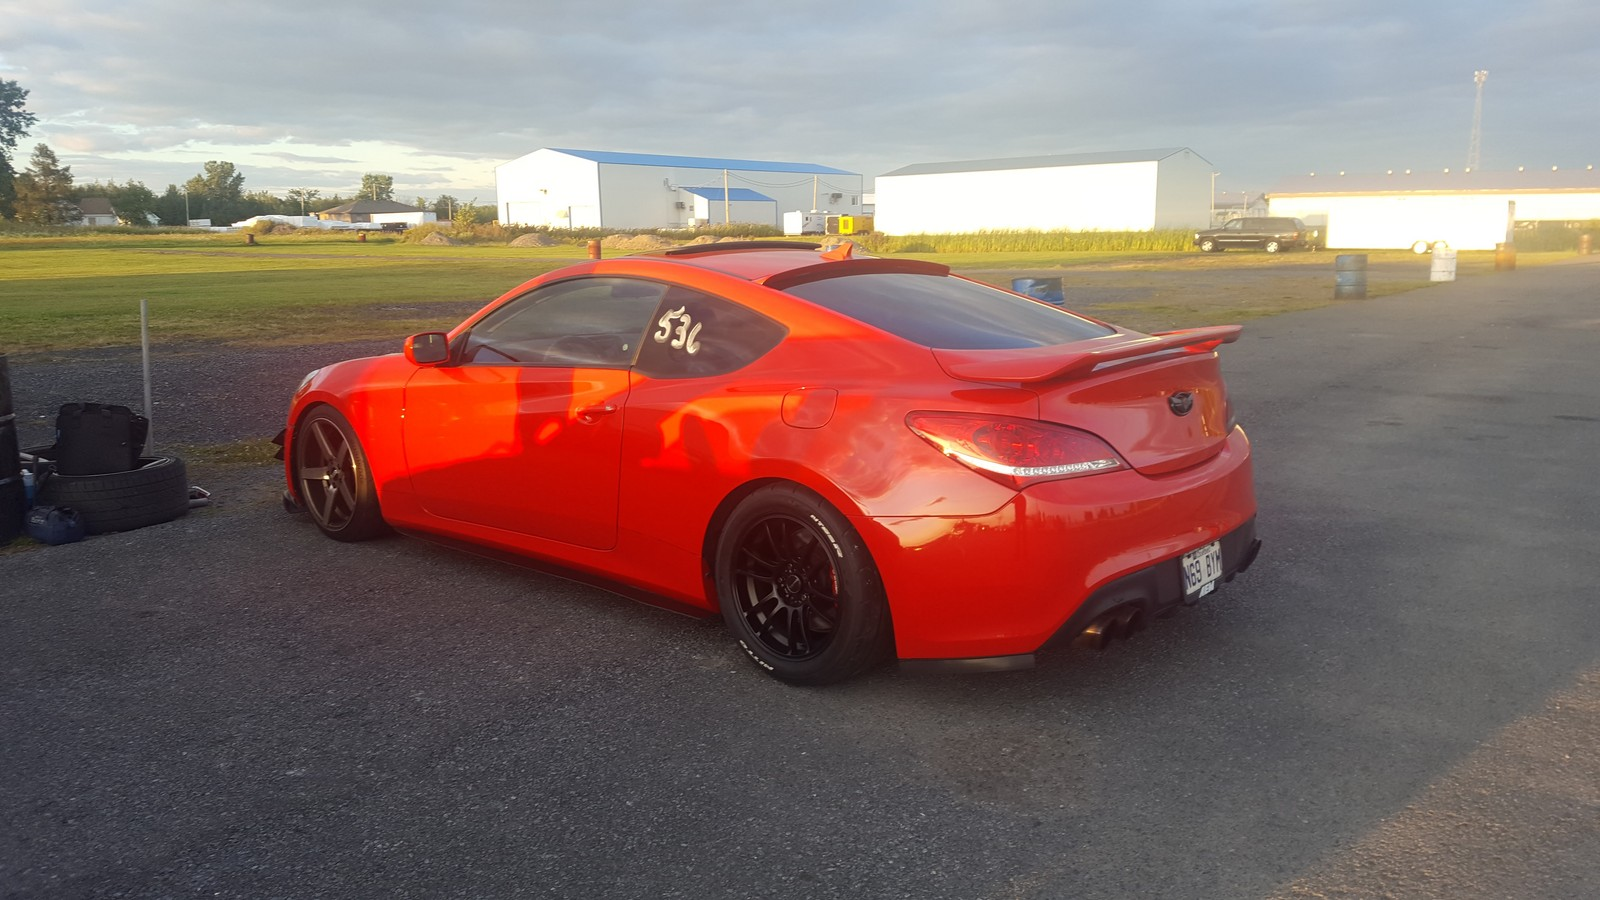 2011 hyundai genesis coupe rspecs 1 4 mile drag racing. Black Bedroom Furniture Sets. Home Design Ideas